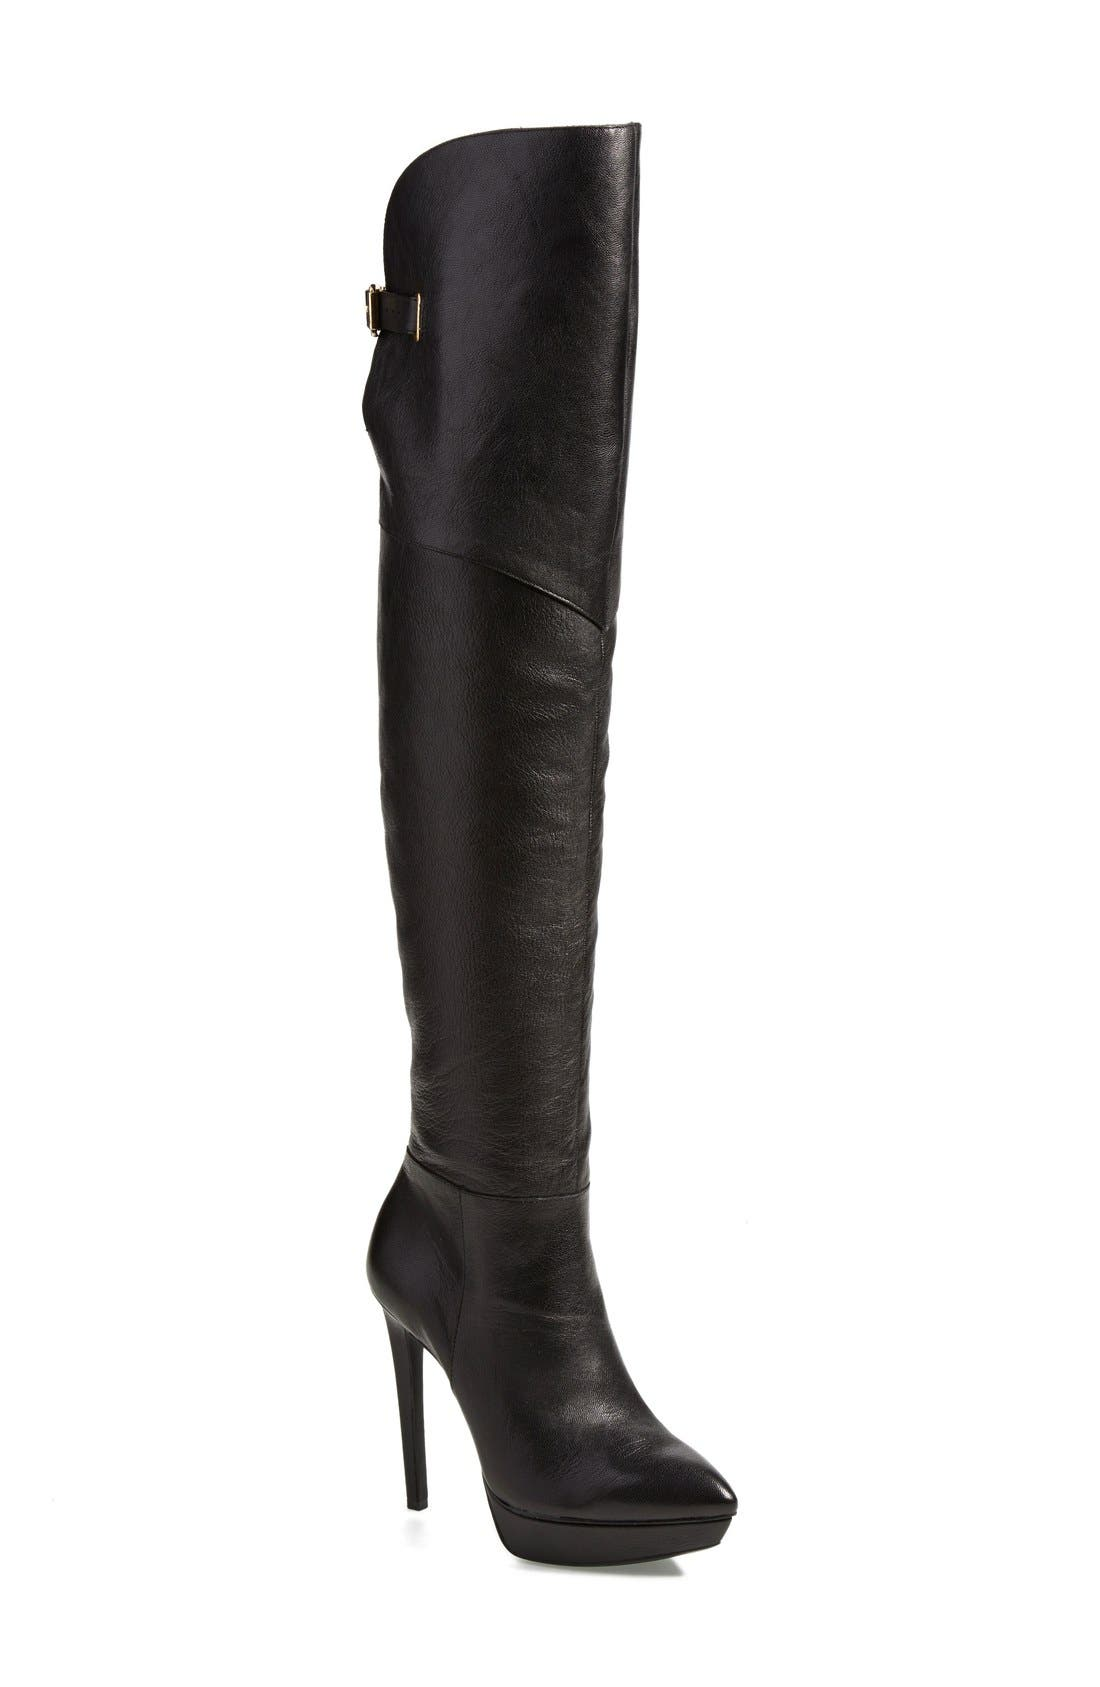 'Valentia' Over the Knee Platform Boot,                             Main thumbnail 1, color,                             001